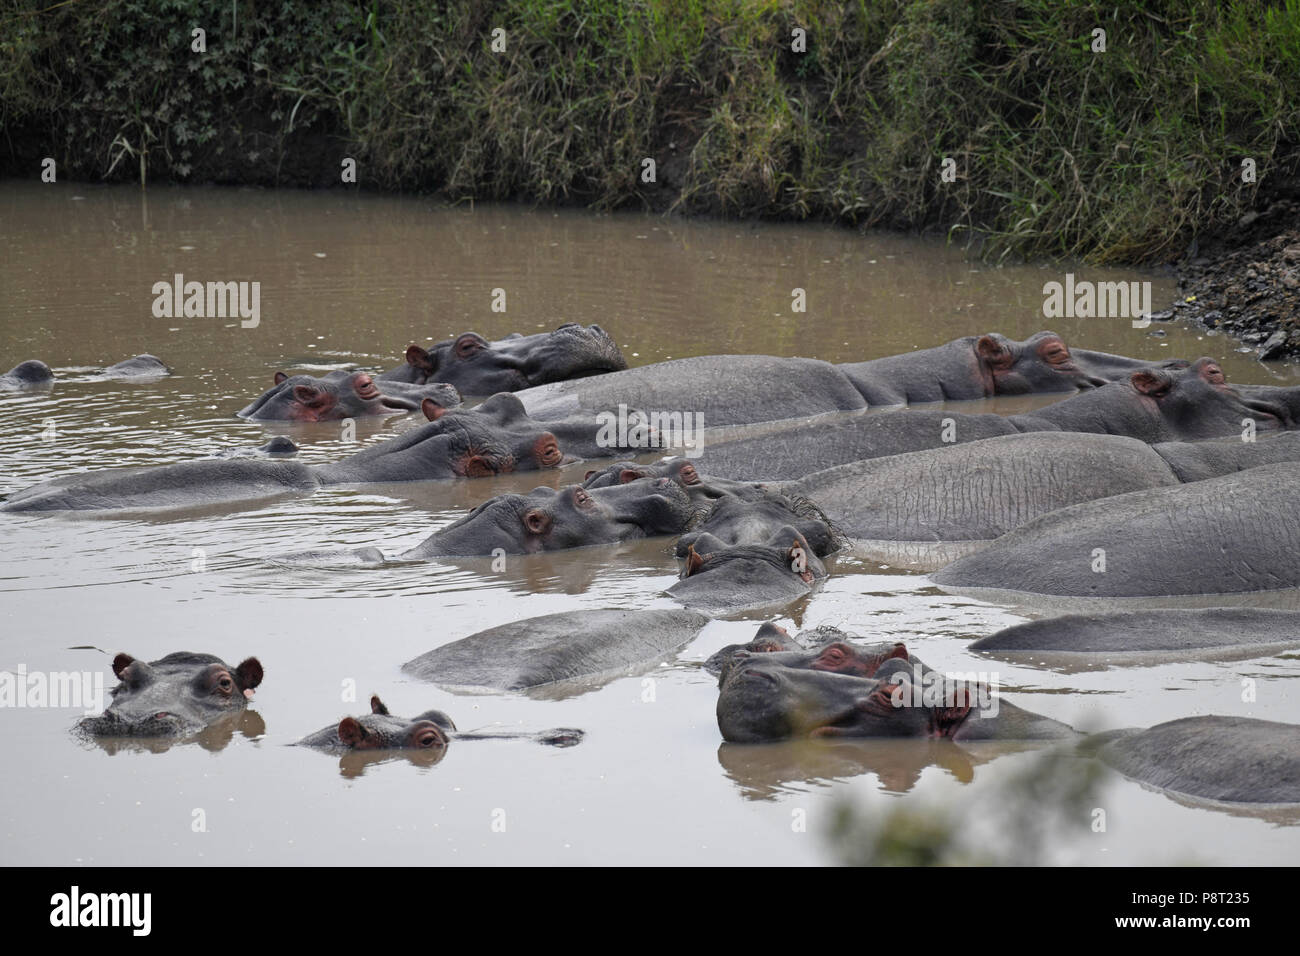 The Common Hippopotamus (Hippopotamus amphibius). Olare Motorogi Conservancy, Maasai Mara, Kenya, East Africa Stock Photo